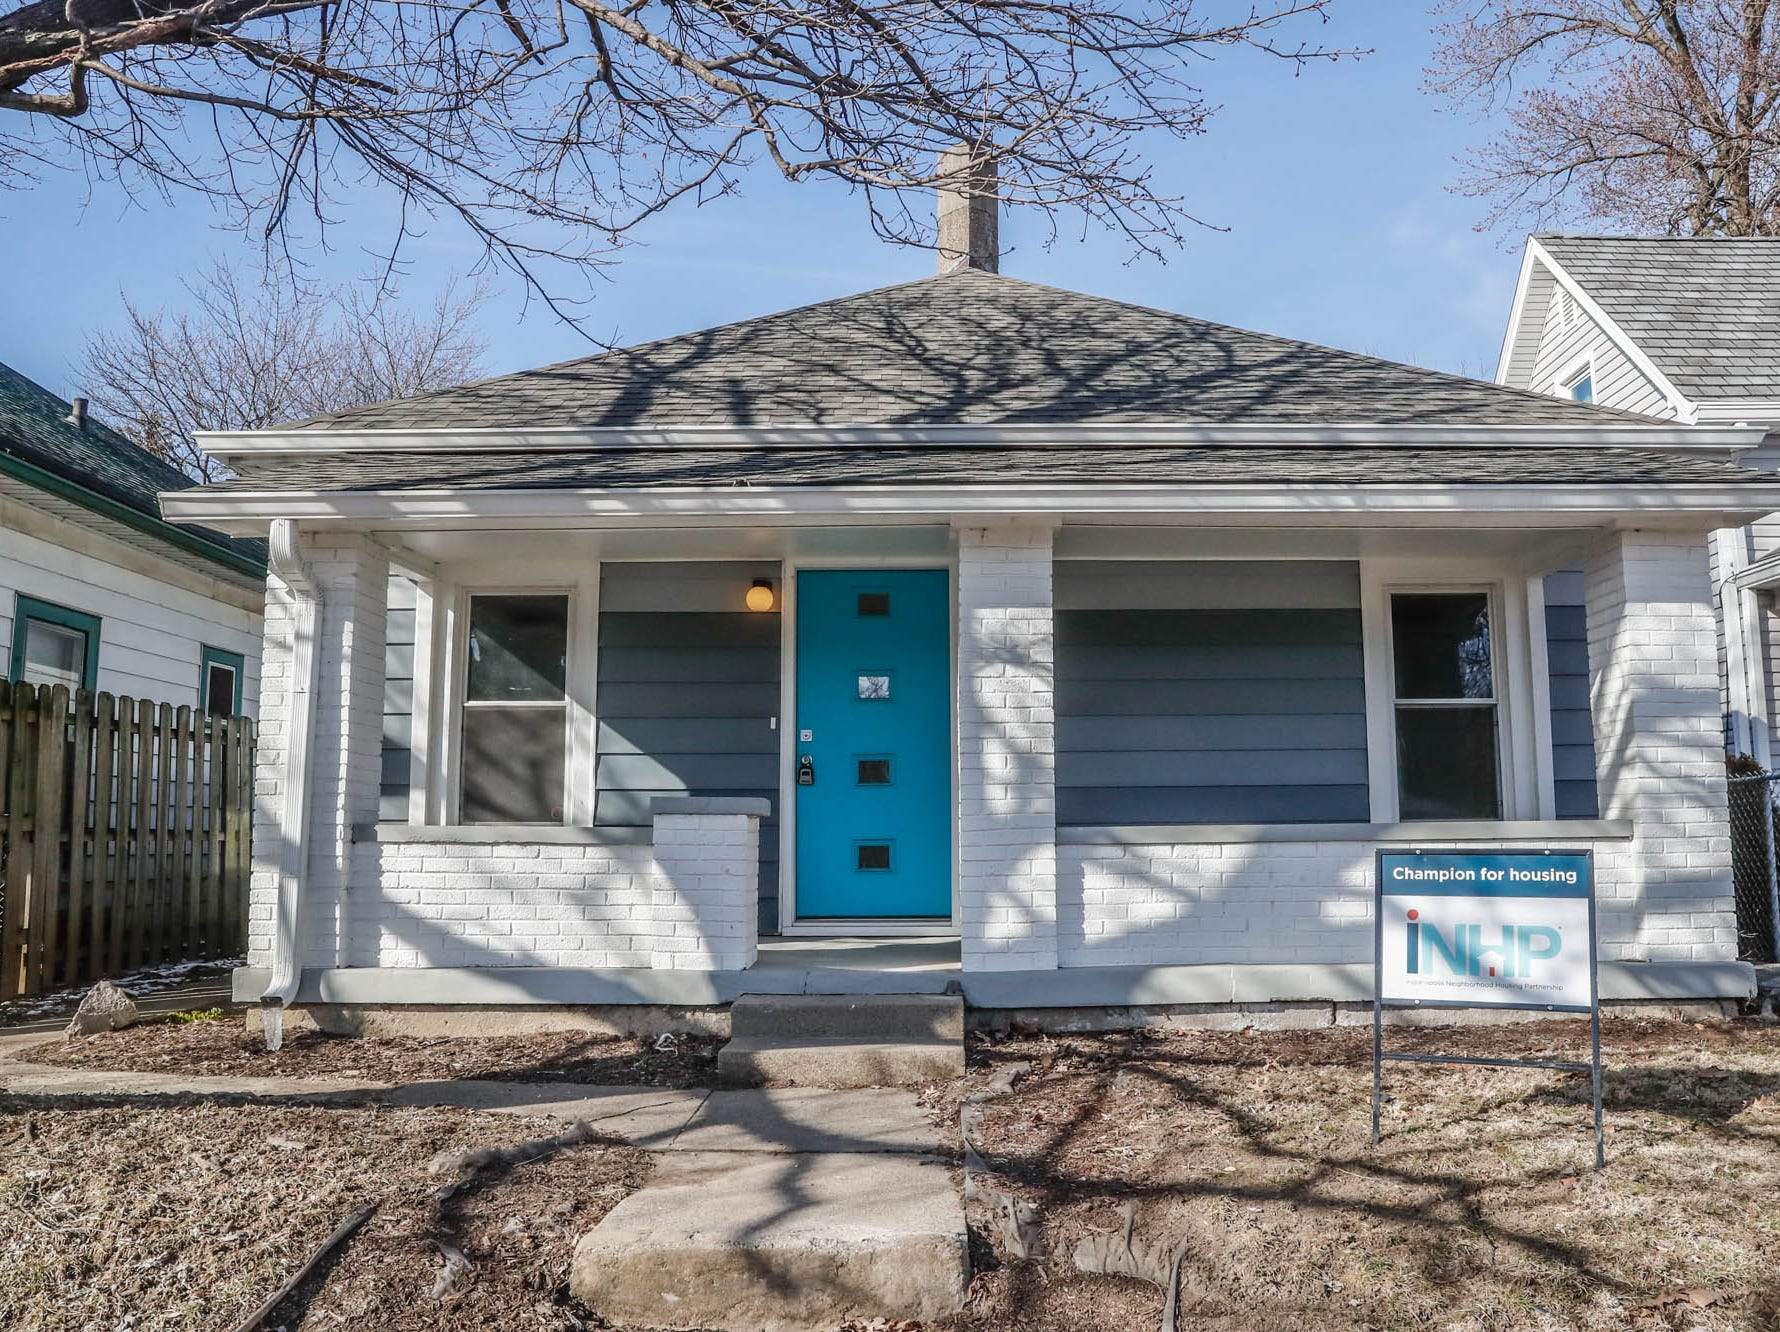 A newly remodeled home on Cruft St. is affectionally known as the 'gray house' and is part of the Big Car Collaborative and Riley Area Development affordable artist home ownership program on the near south side of Indianapolis on Wednesday, March 6, 2019. The renovation of this home was done by Axis Architecture and Big Car board member Ursula David. The goal of the Artist and Public Life Residency (APLR), will be to provide artists with home ownership while they work and collaborate with the greater community.